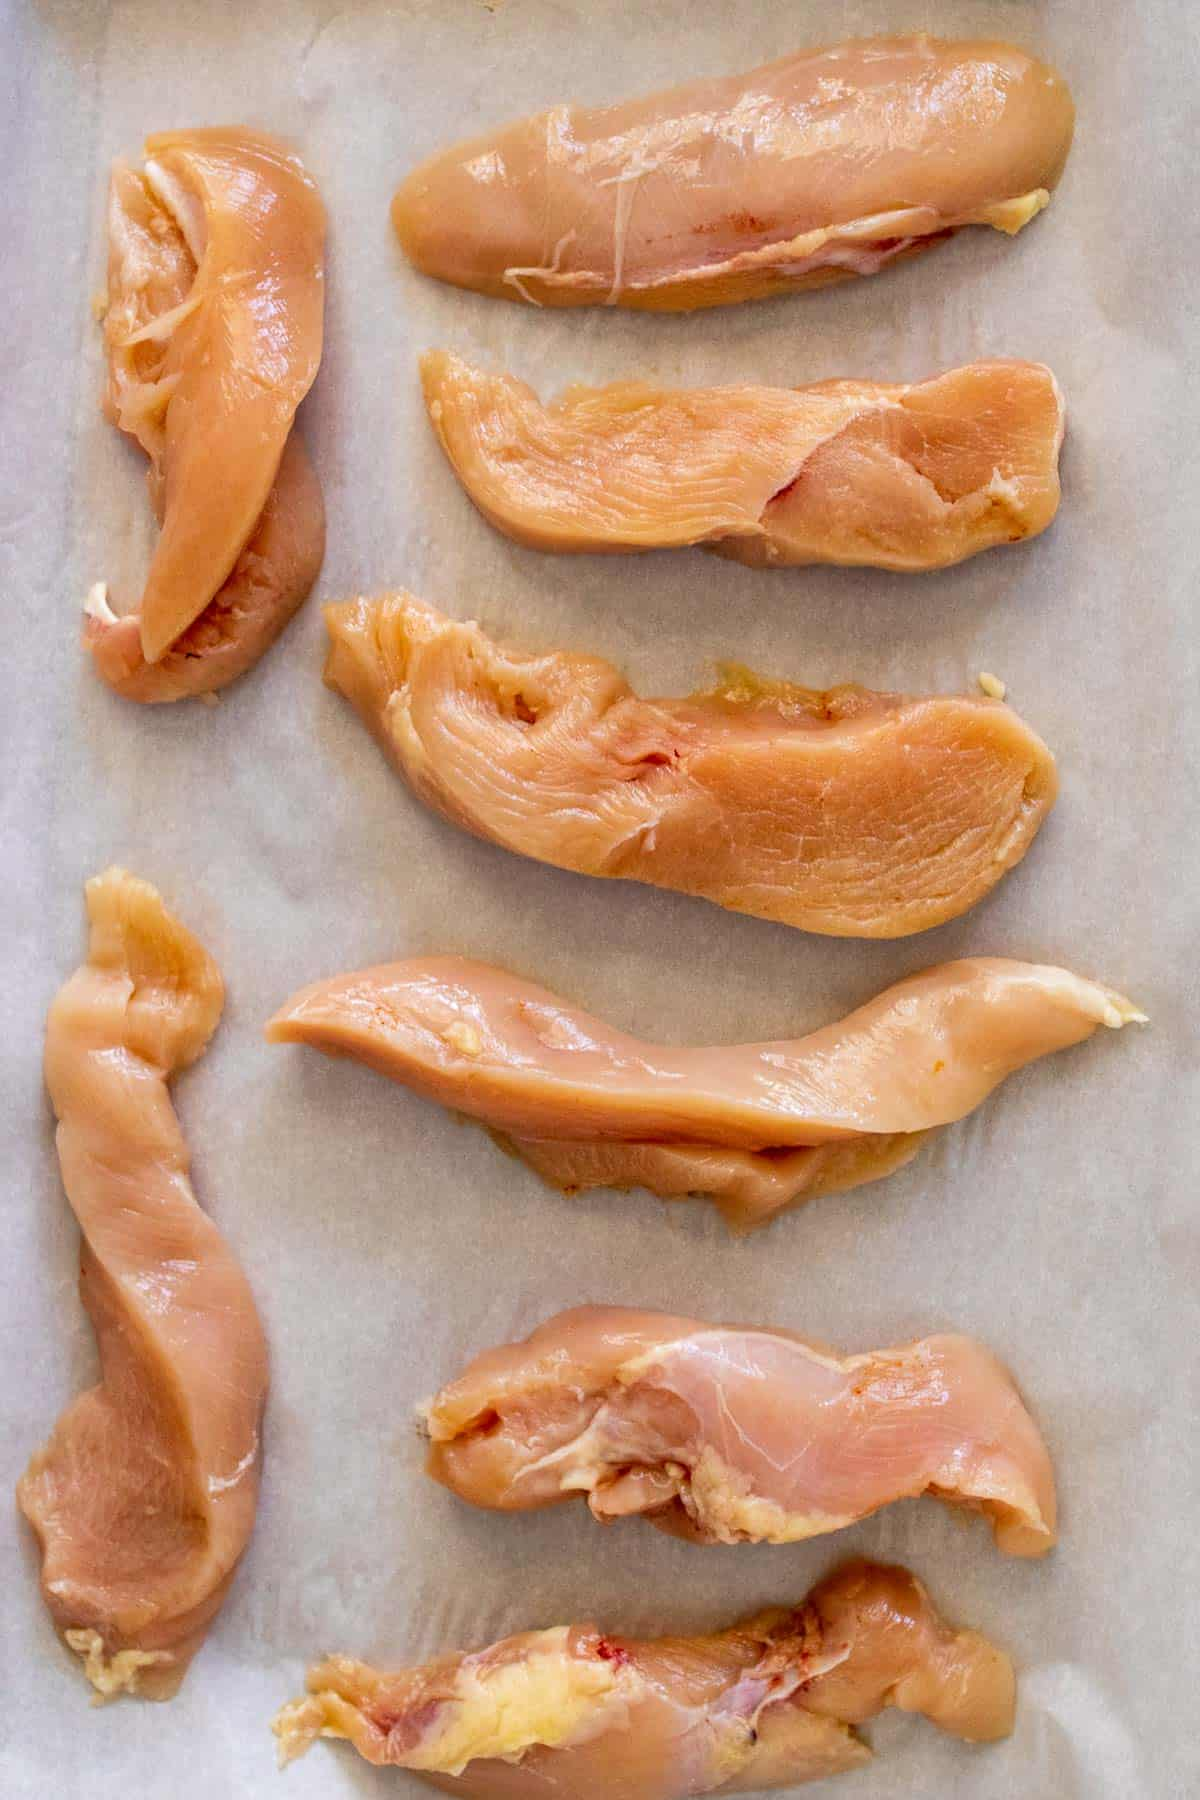 Strips of chicken breast on a baking sheet lined with parchment paper